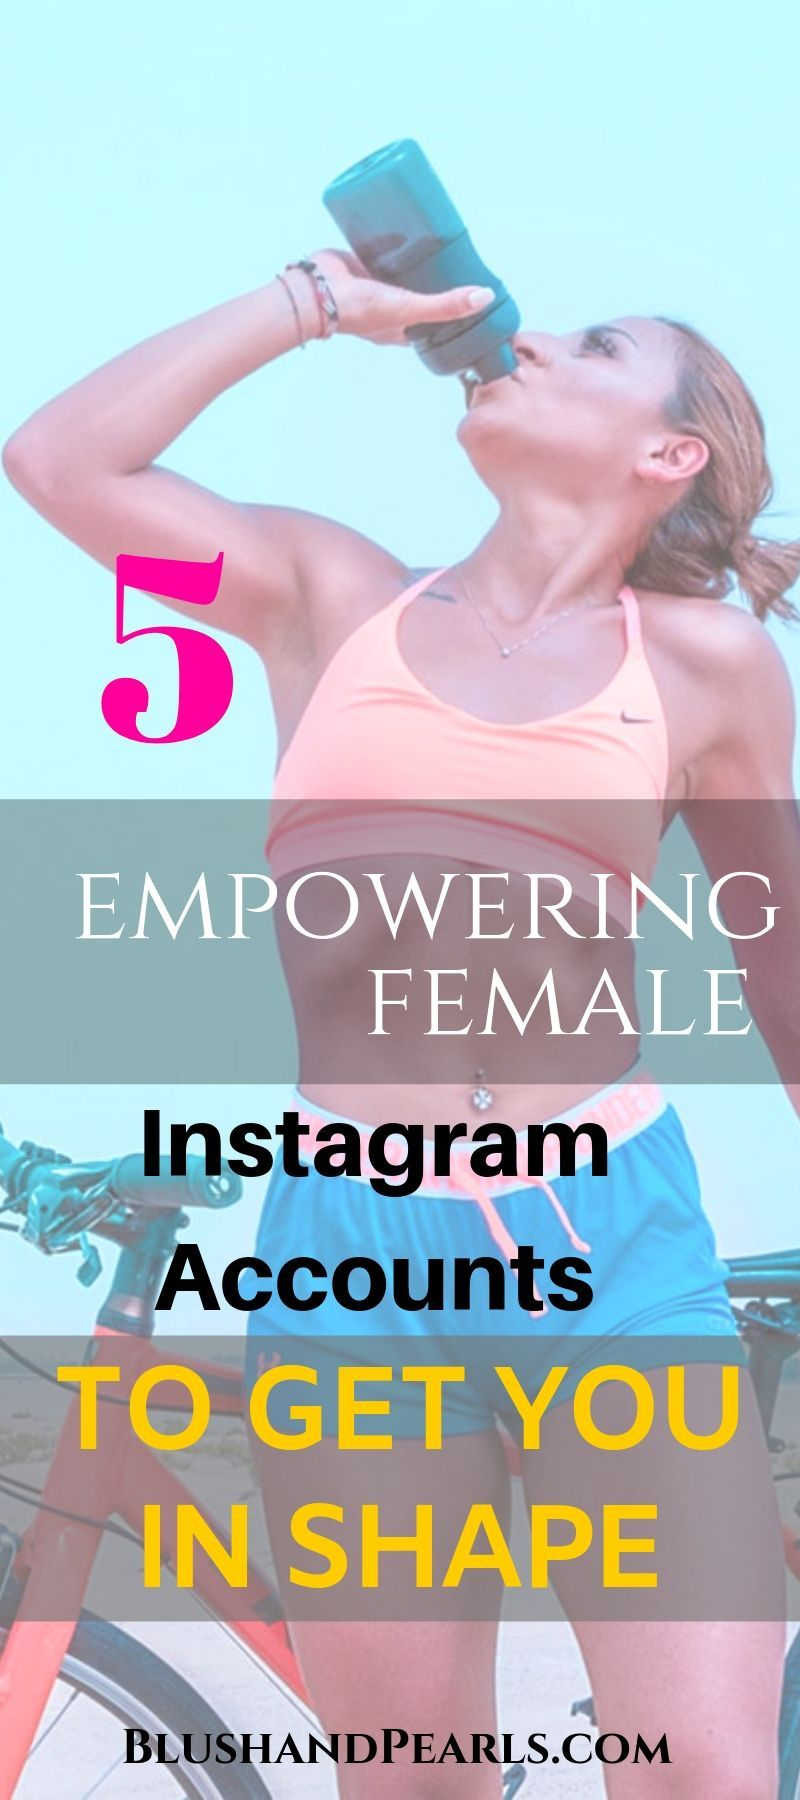 5 Empowering Instagram Accounts Helping Women Reach Their Fitness Goals Blush Pearls Fitness Instagram Fitness Instagram Accounts Fitness Goals